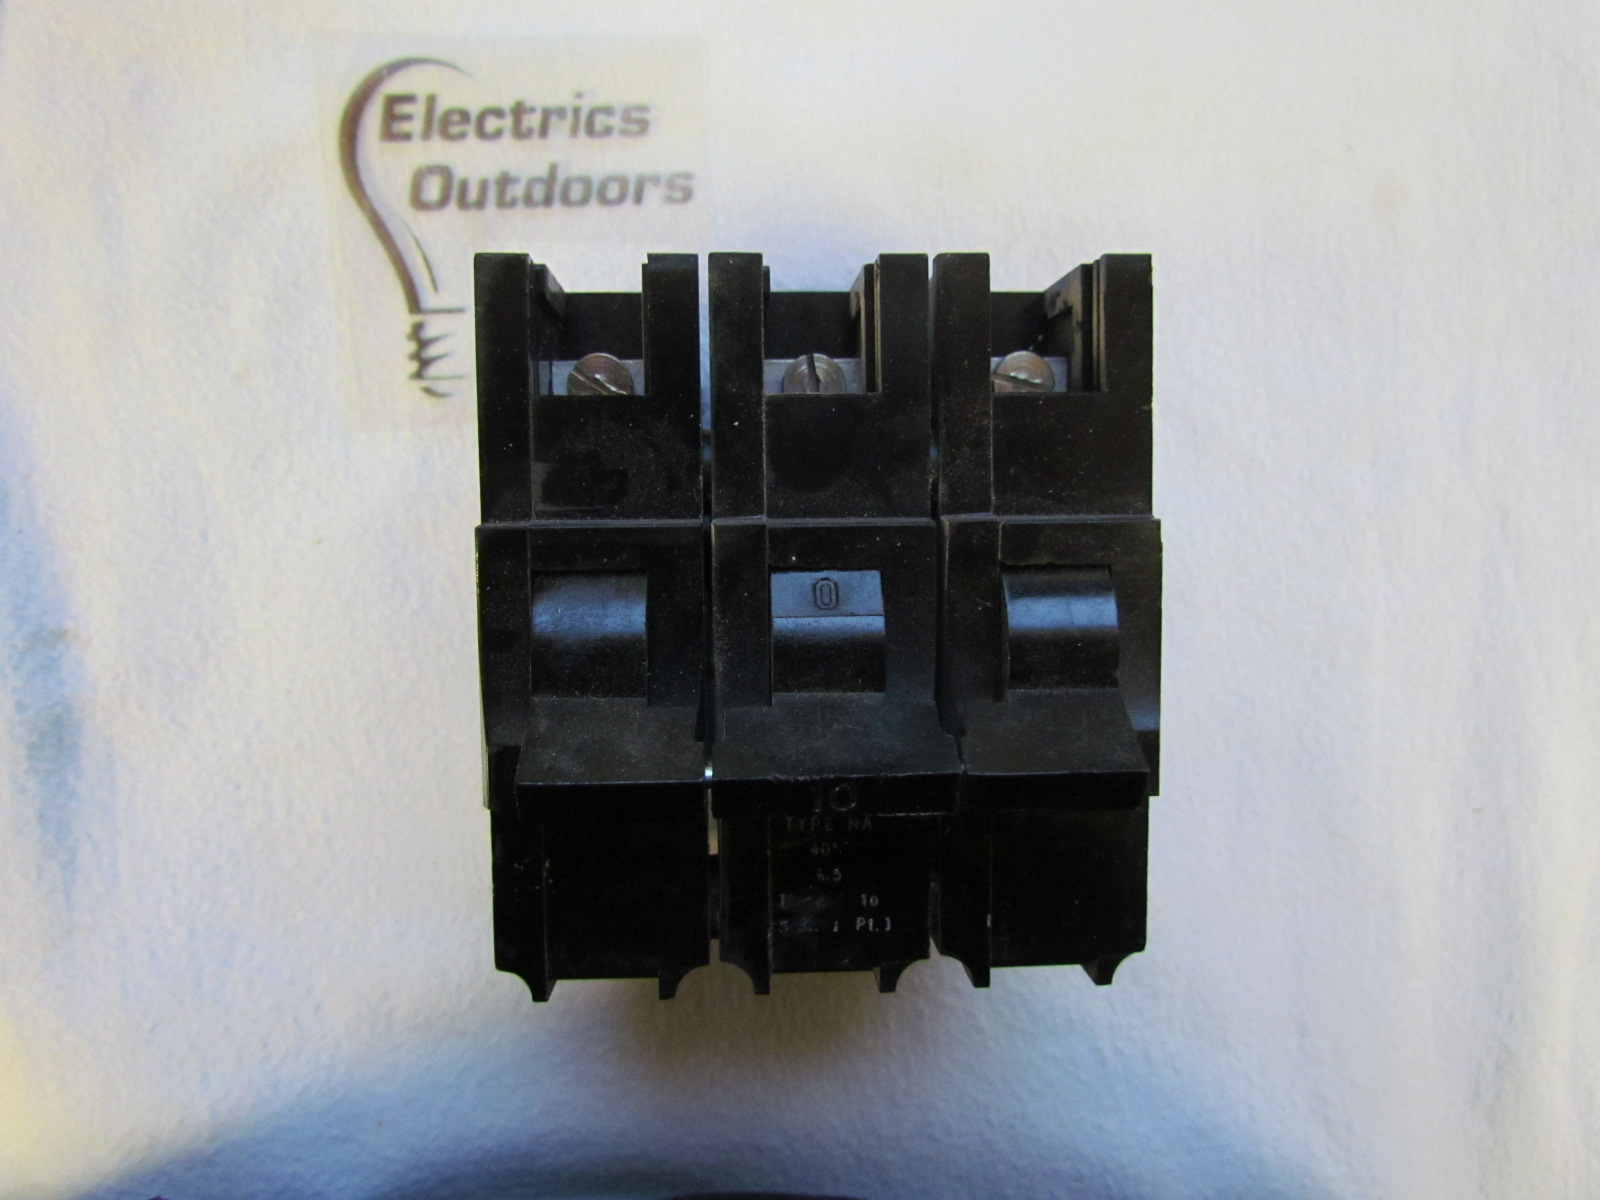 FEDERAL ELECTRIC 10 AMP TYPE 4 M5 TRIPLE POLE MCB CIRCUIT BREAKER STABLOK NA